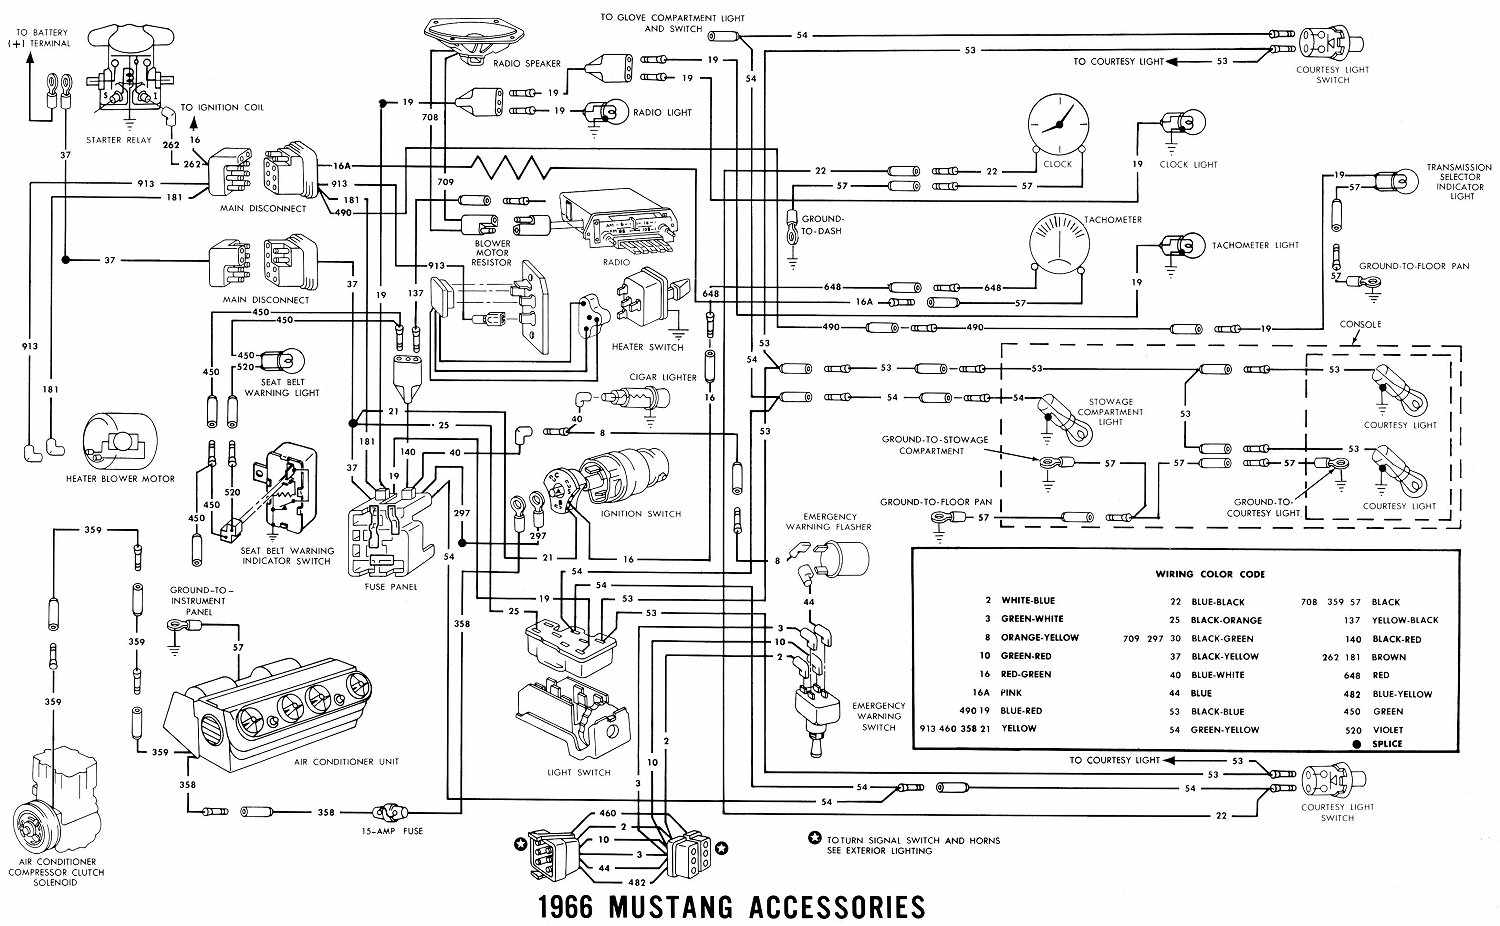 wiring diagrams 911 1966 mustang complete accessories wiring diagram pac 80 goldwing wiring diagram 1966 [ 1500 x 926 Pixel ]